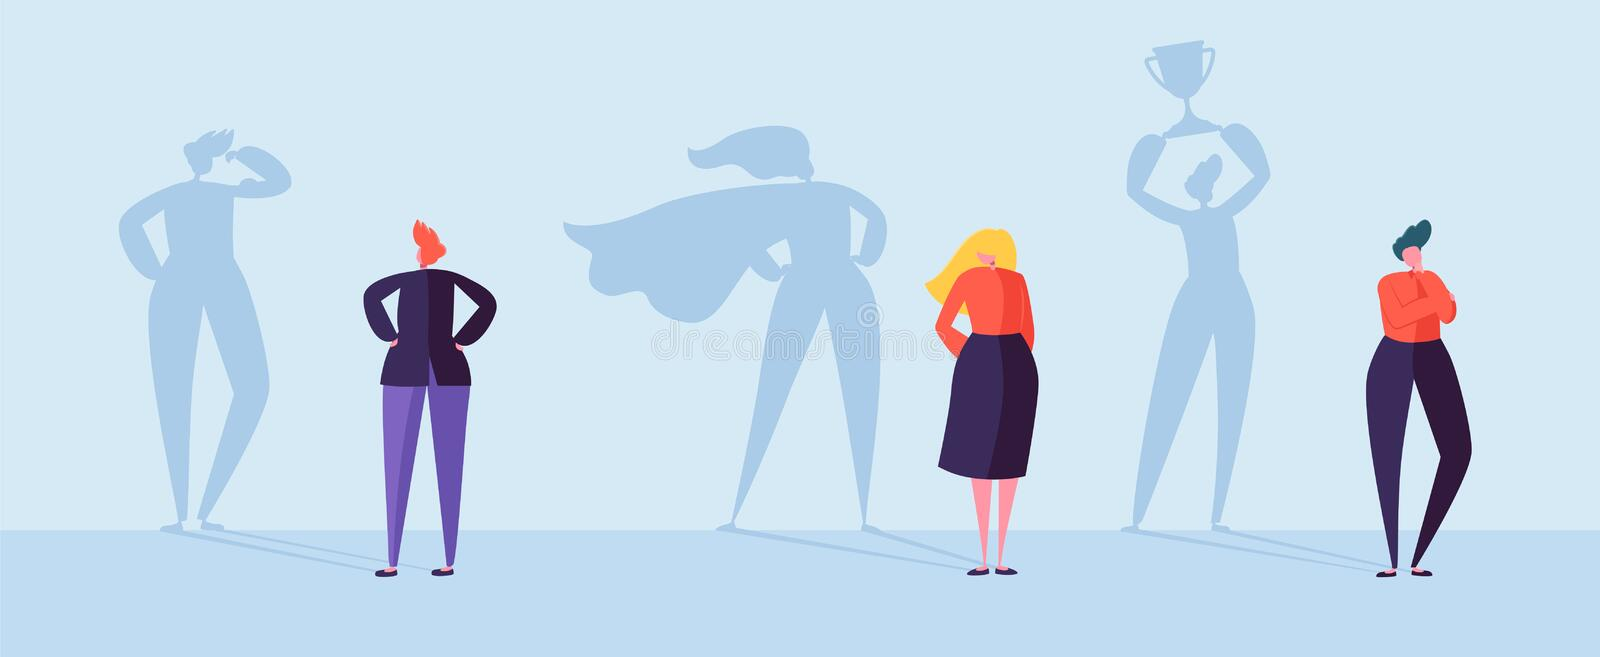 Business People with Winner Shadow. Male and Female Characters with Silhouettes of Leadership, Achievement Motivation. Business People with Winner Shadow. Male stock illustration